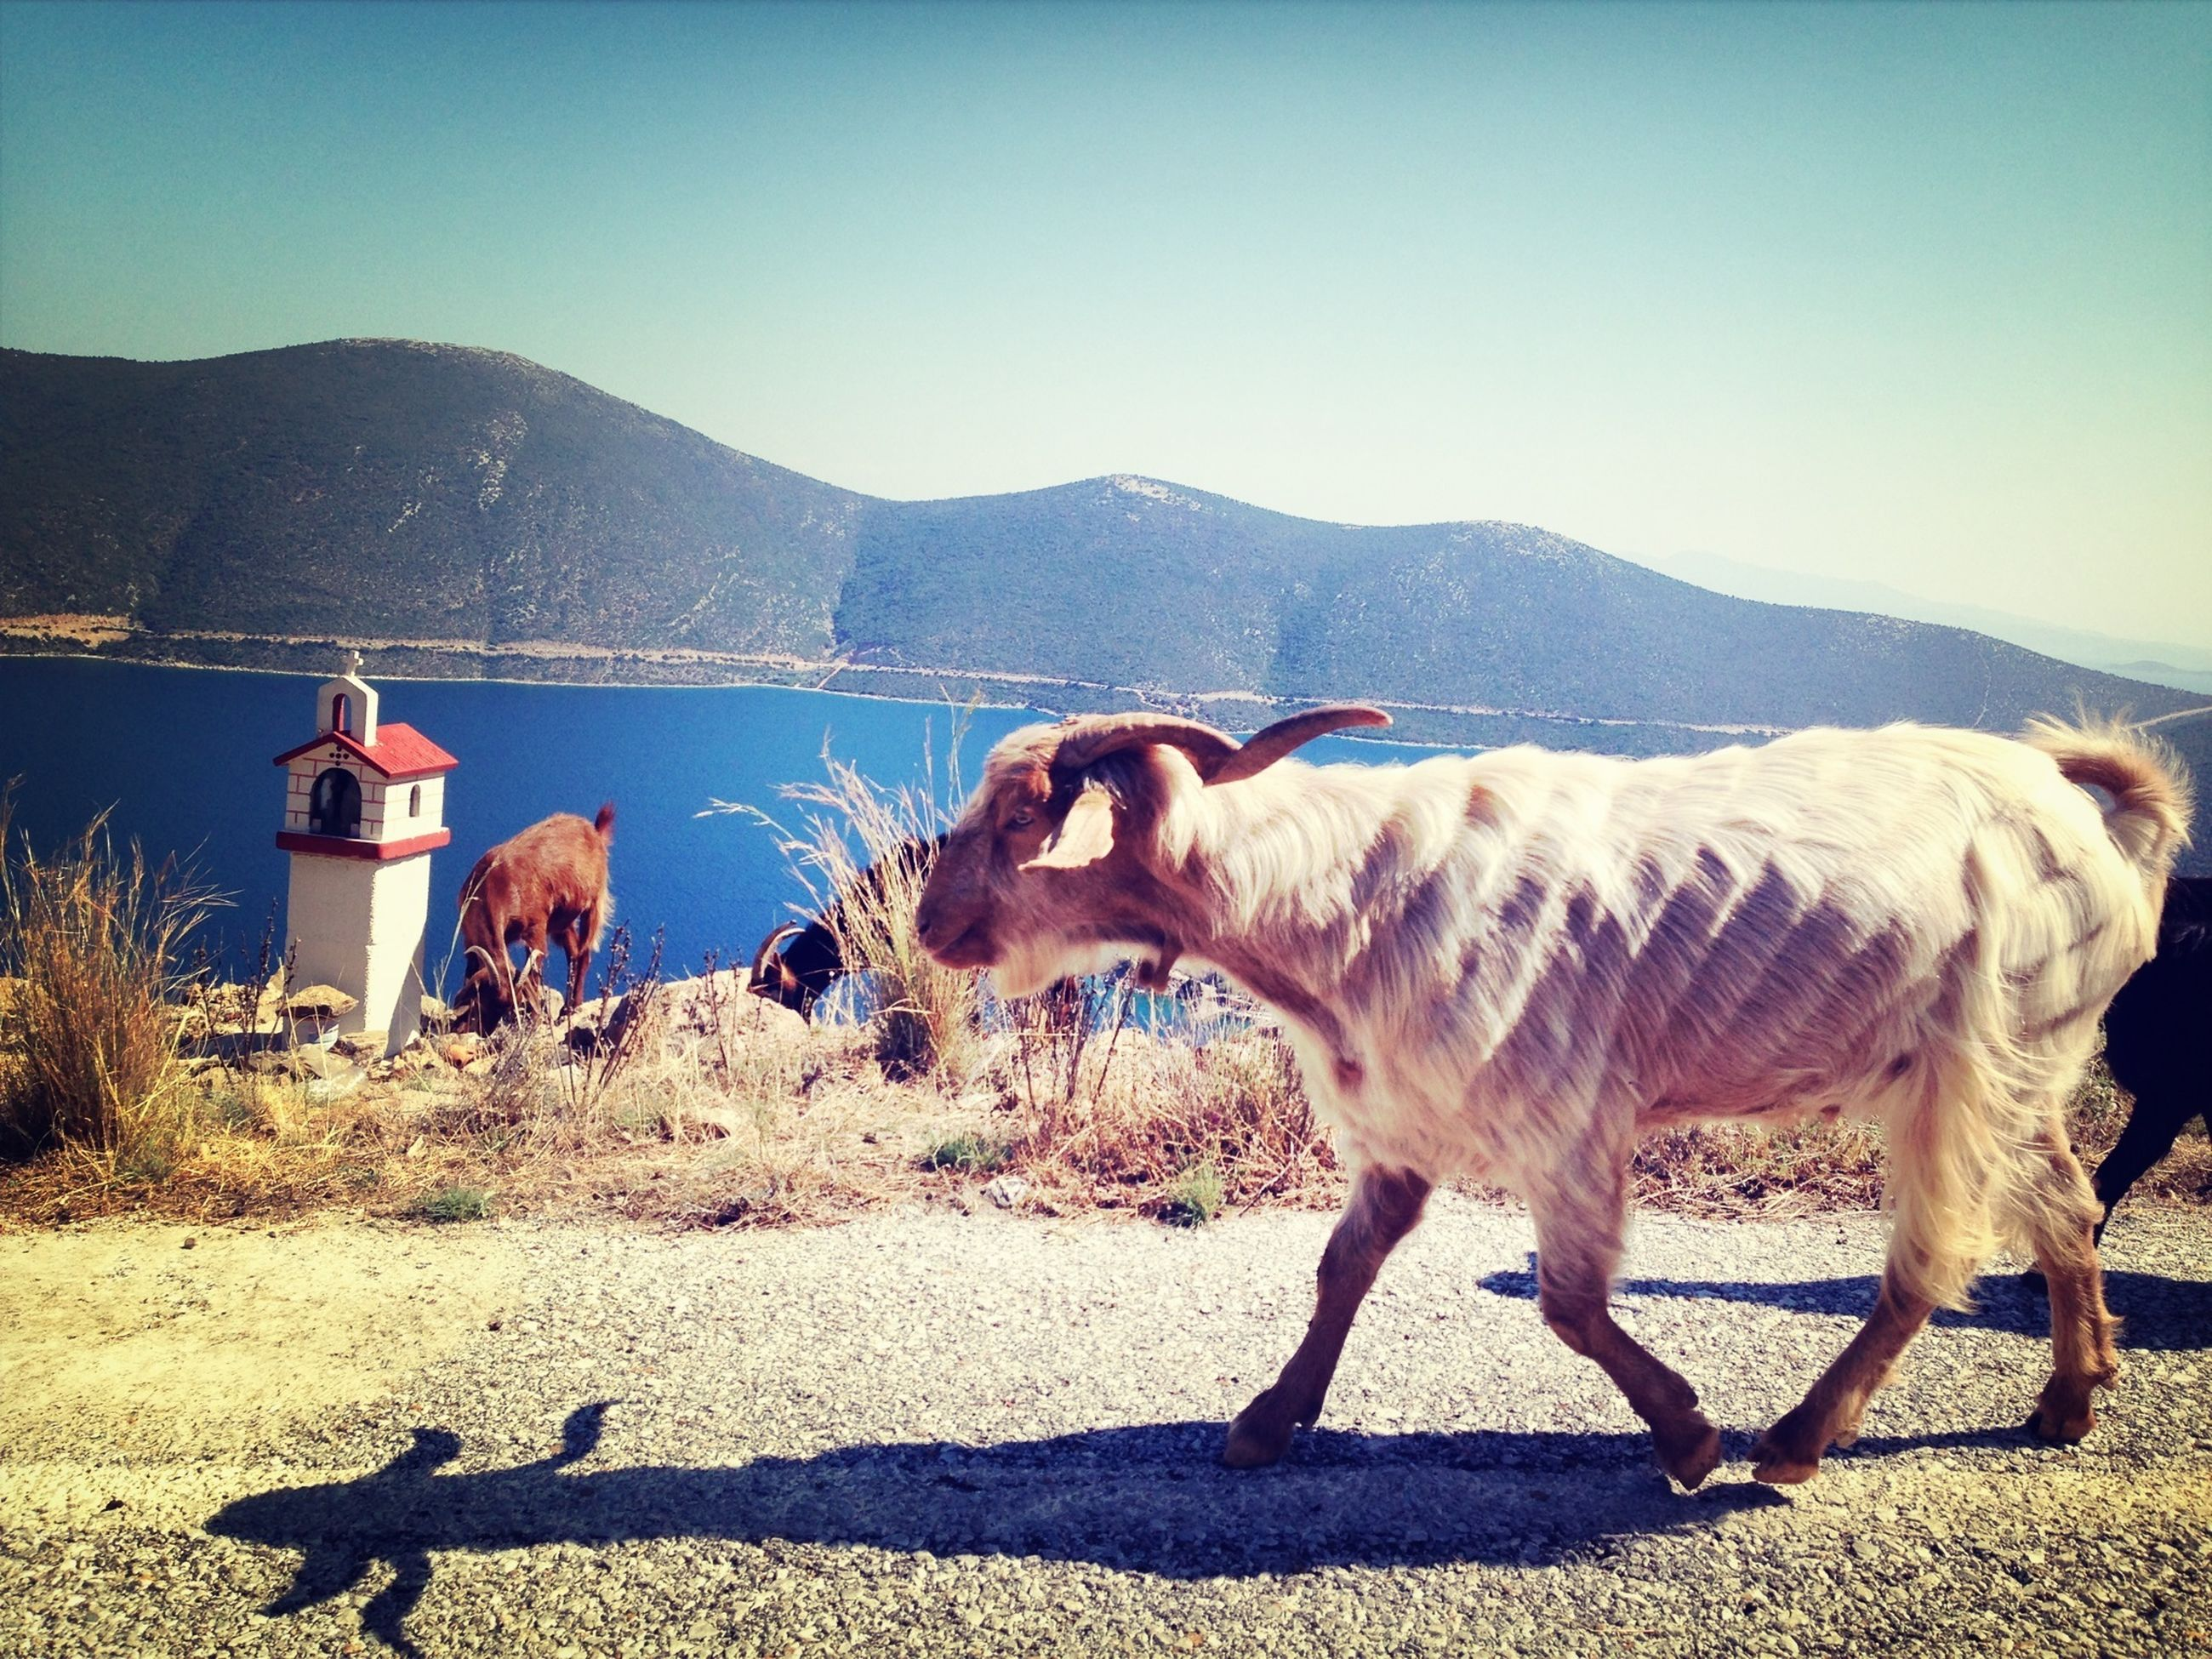 animal themes, domestic animals, mammal, clear sky, mountain, one animal, livestock, copy space, water, horse, side view, standing, nature, sand, mountain range, two animals, beach, herbivorous, sky, full length